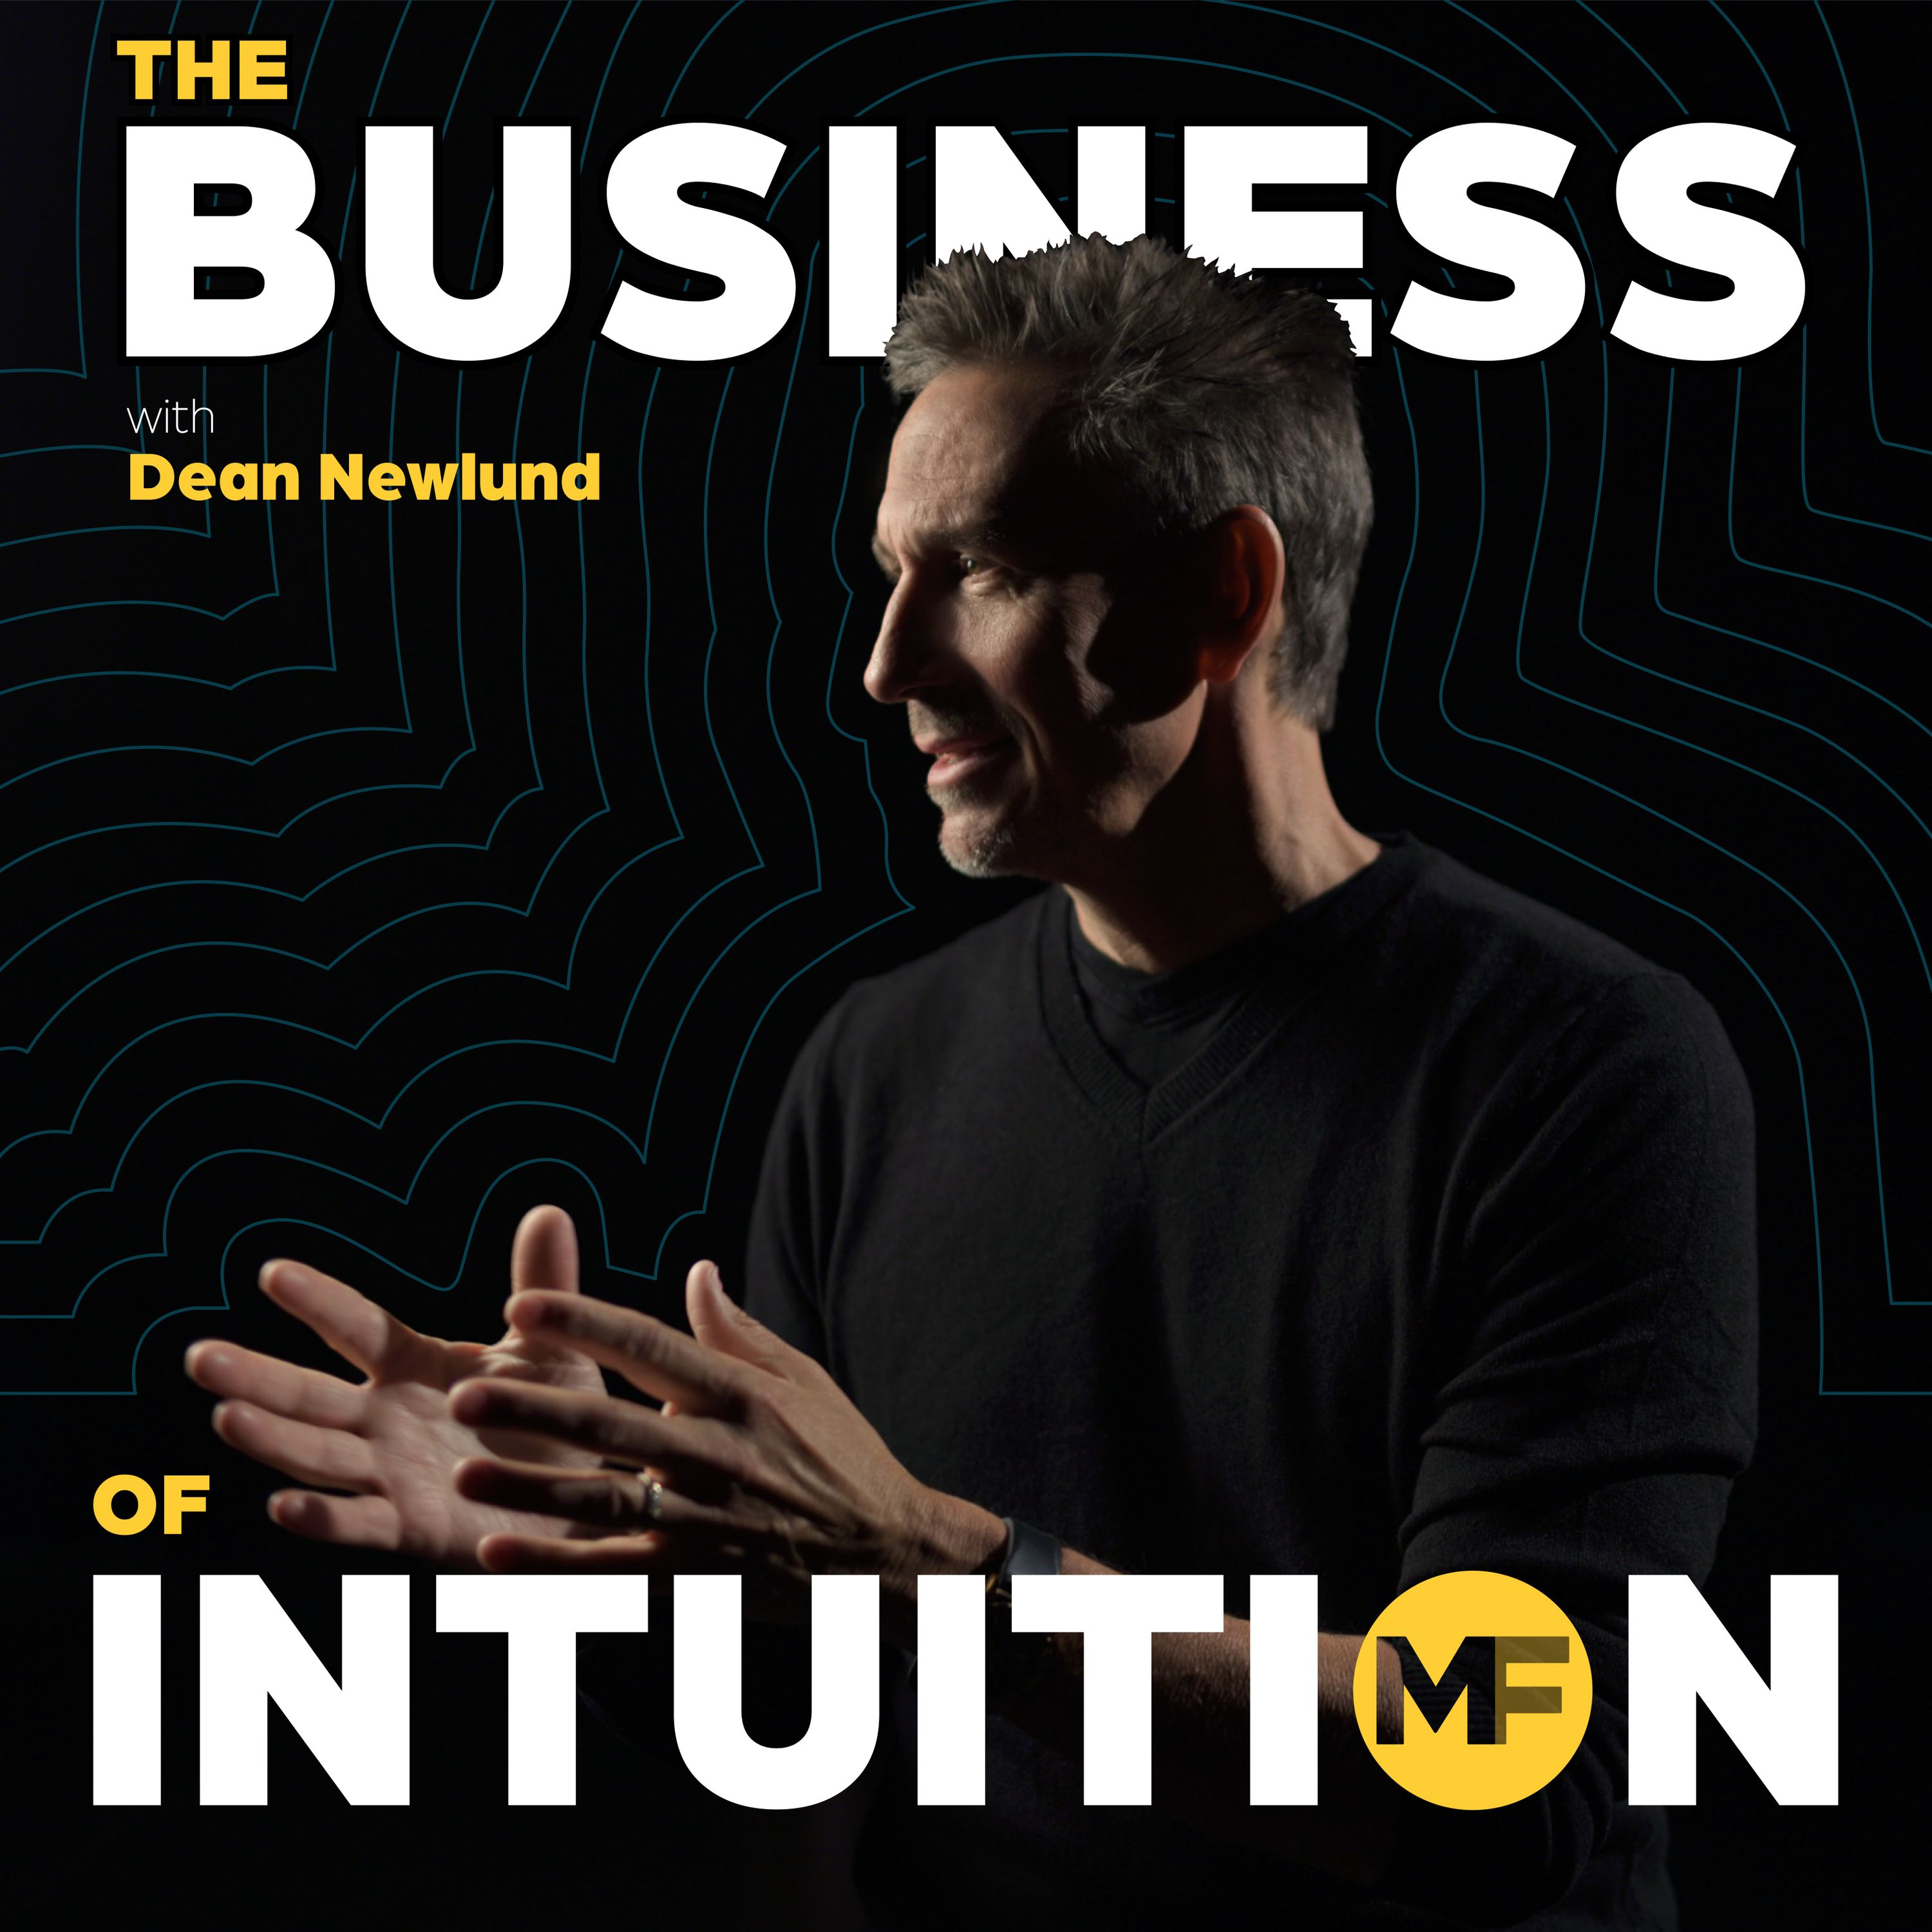 The Business of Intuition